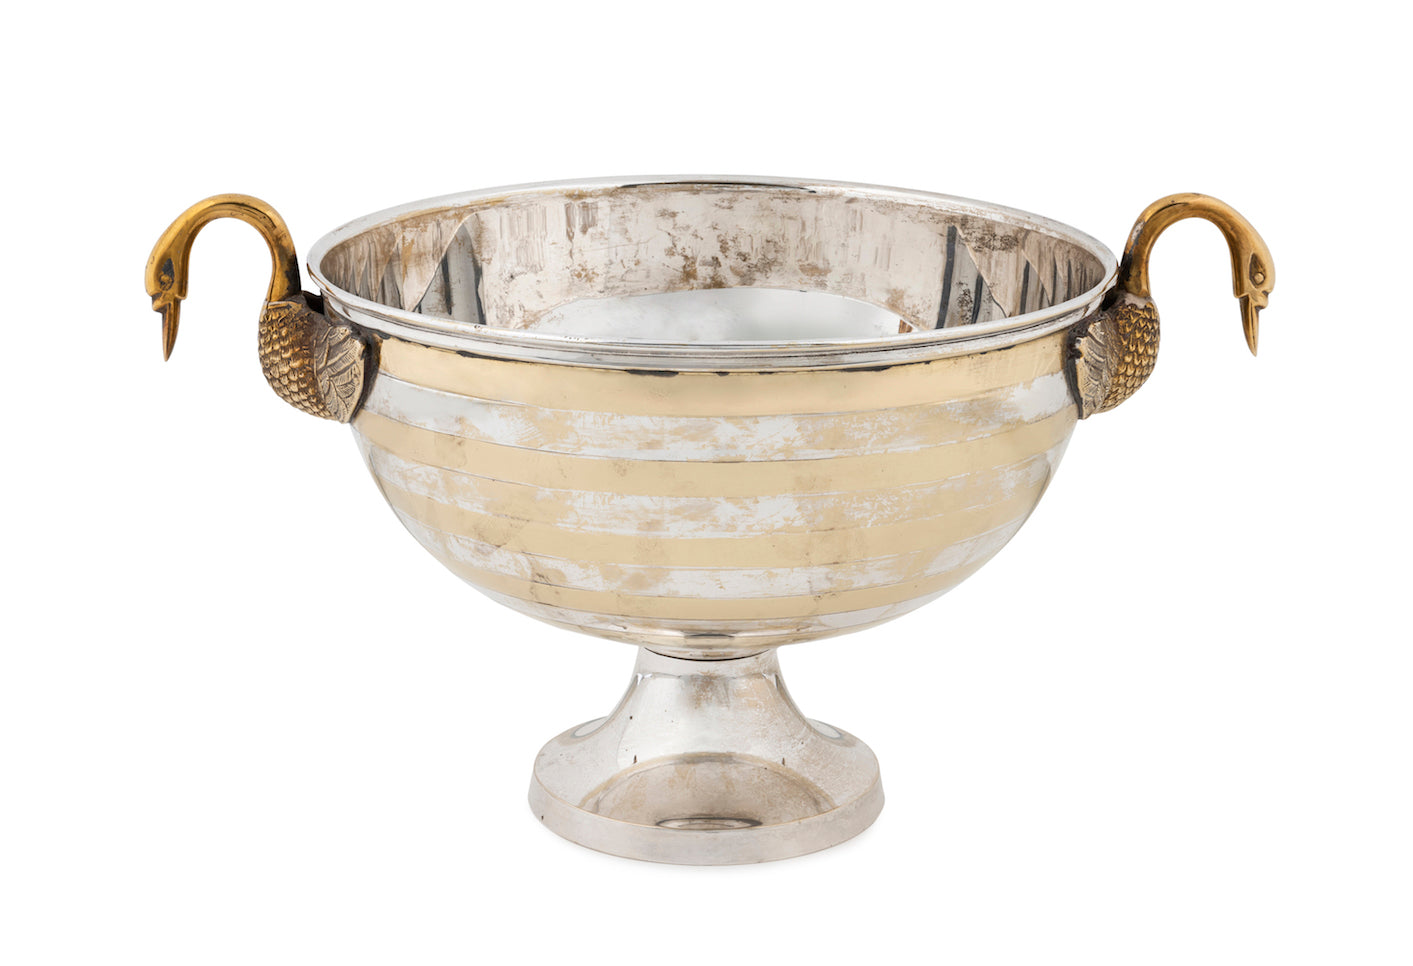 SOLD An unusual brass and silver plate striped wine cooler with twin swan form handles, Indian Circa 1950